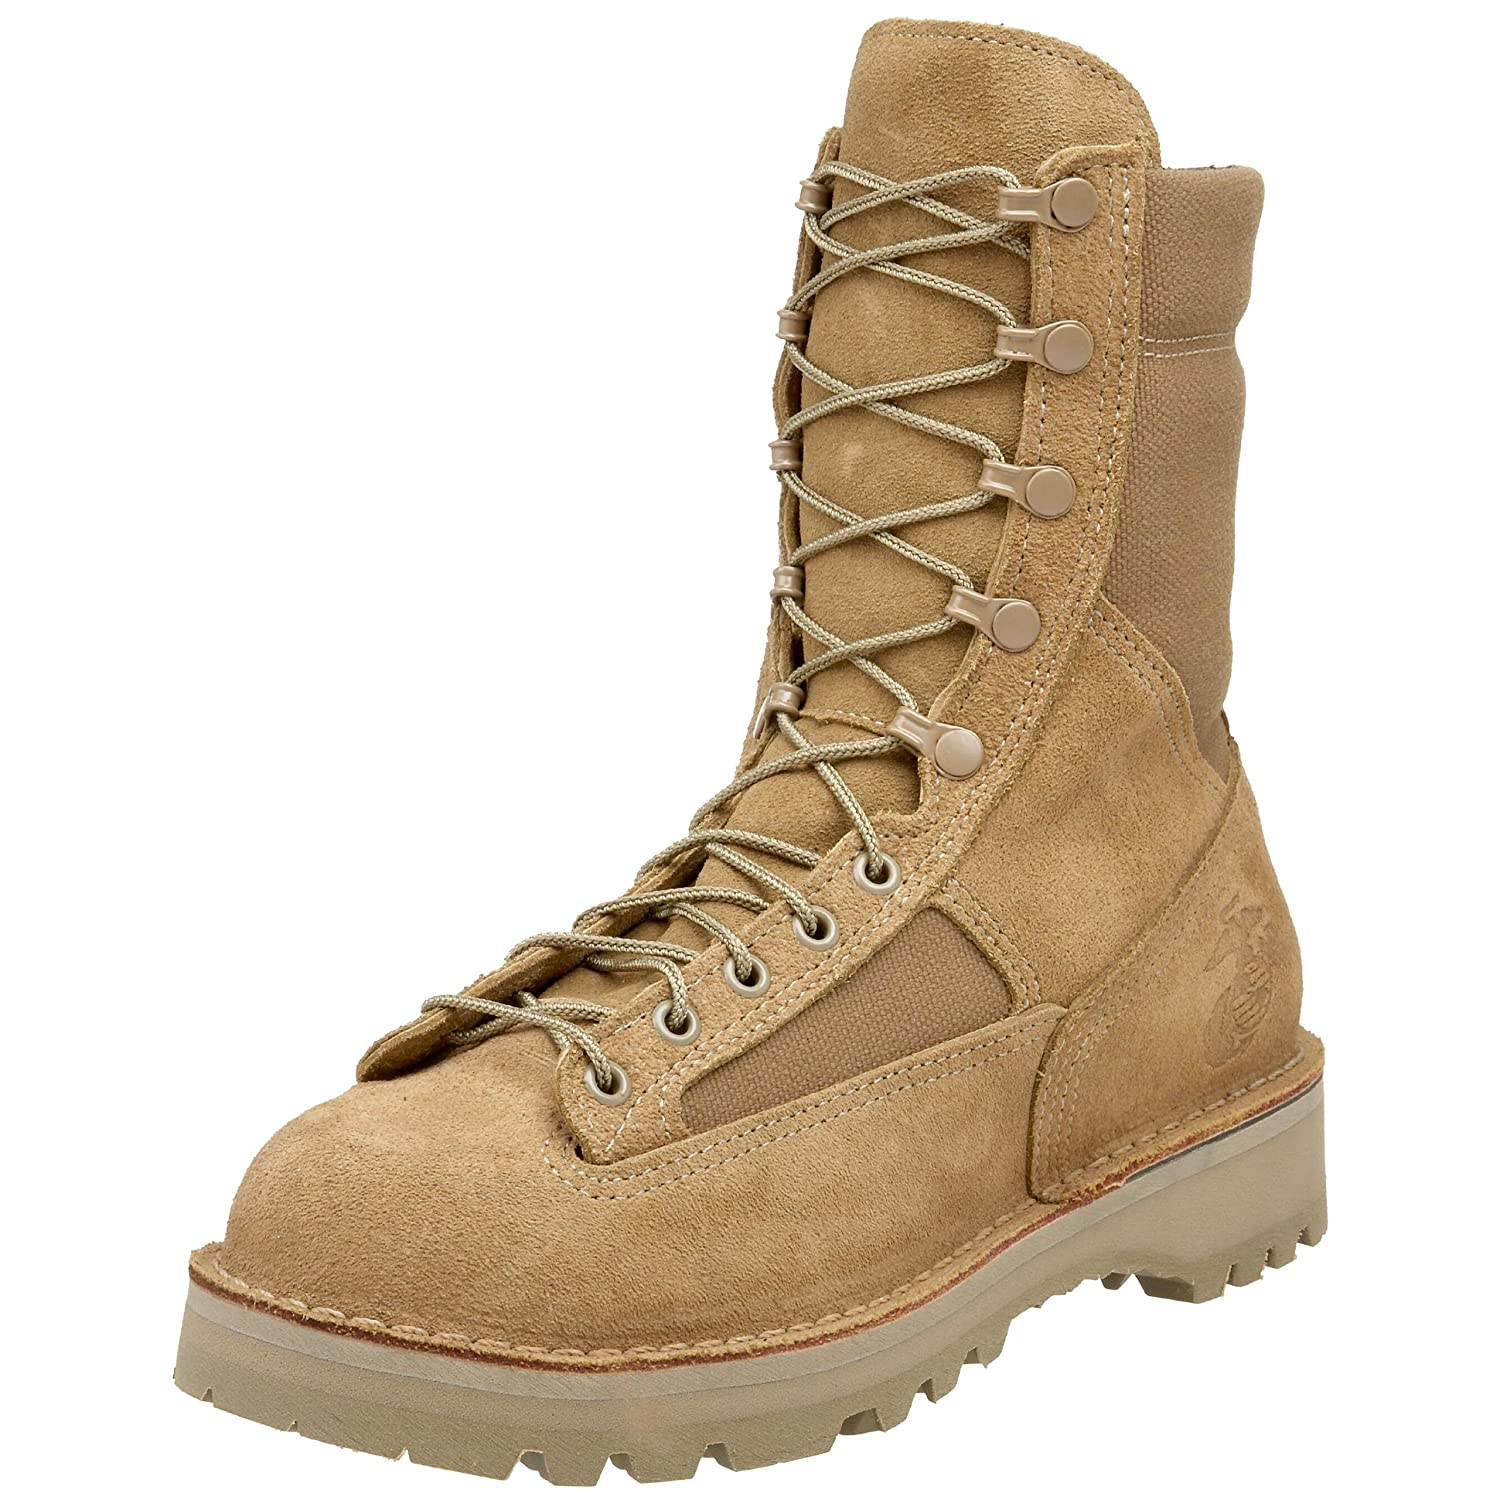 Danner Women's Danner Marine Temperate W Military Boot Mojave 4.5 W US